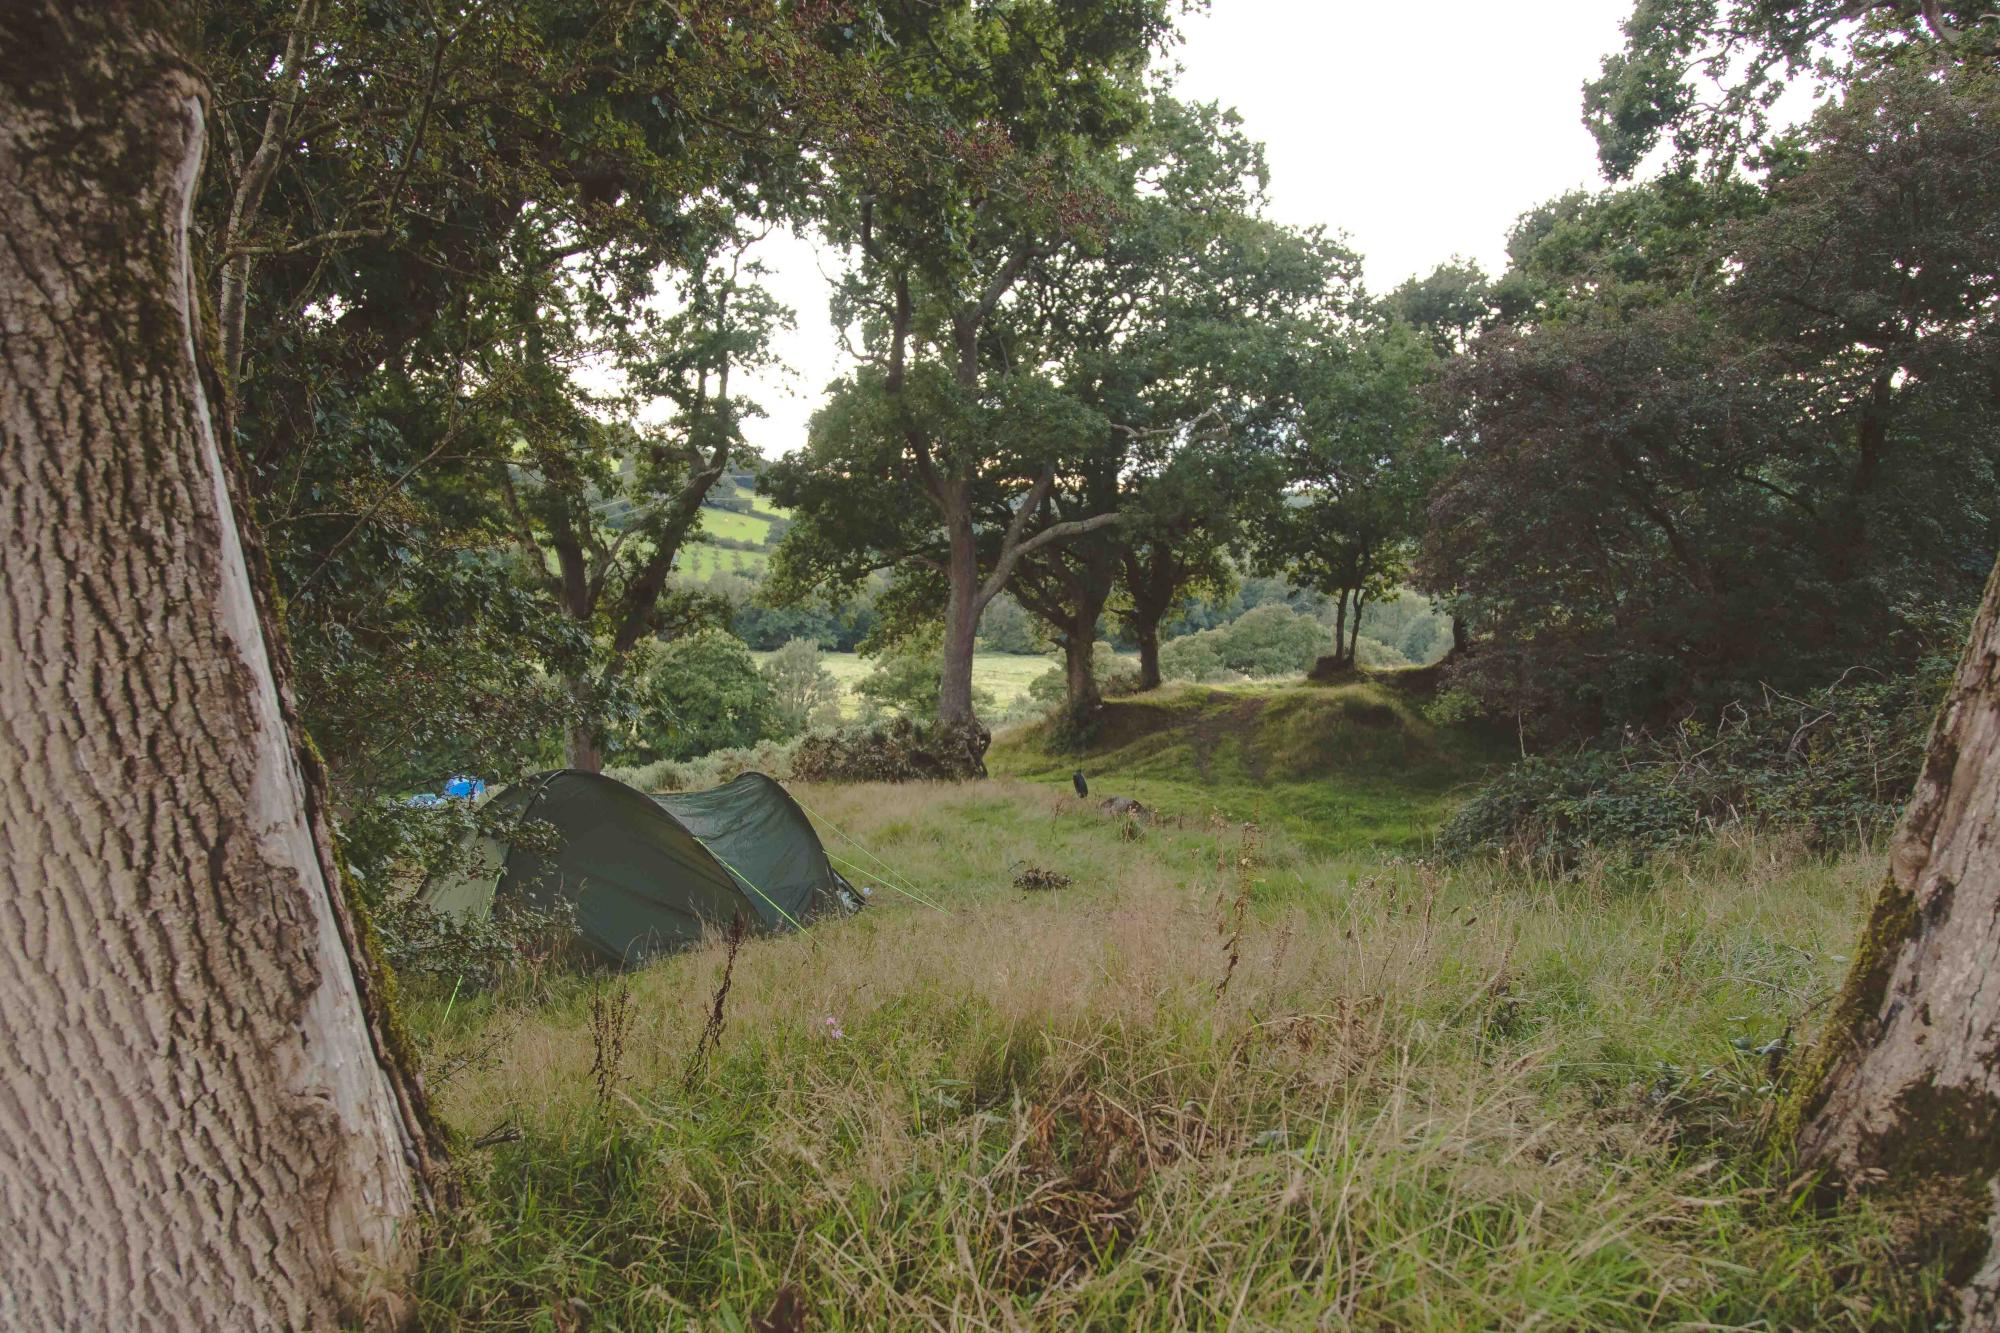 Campsites in South West England – I Love This Campsite